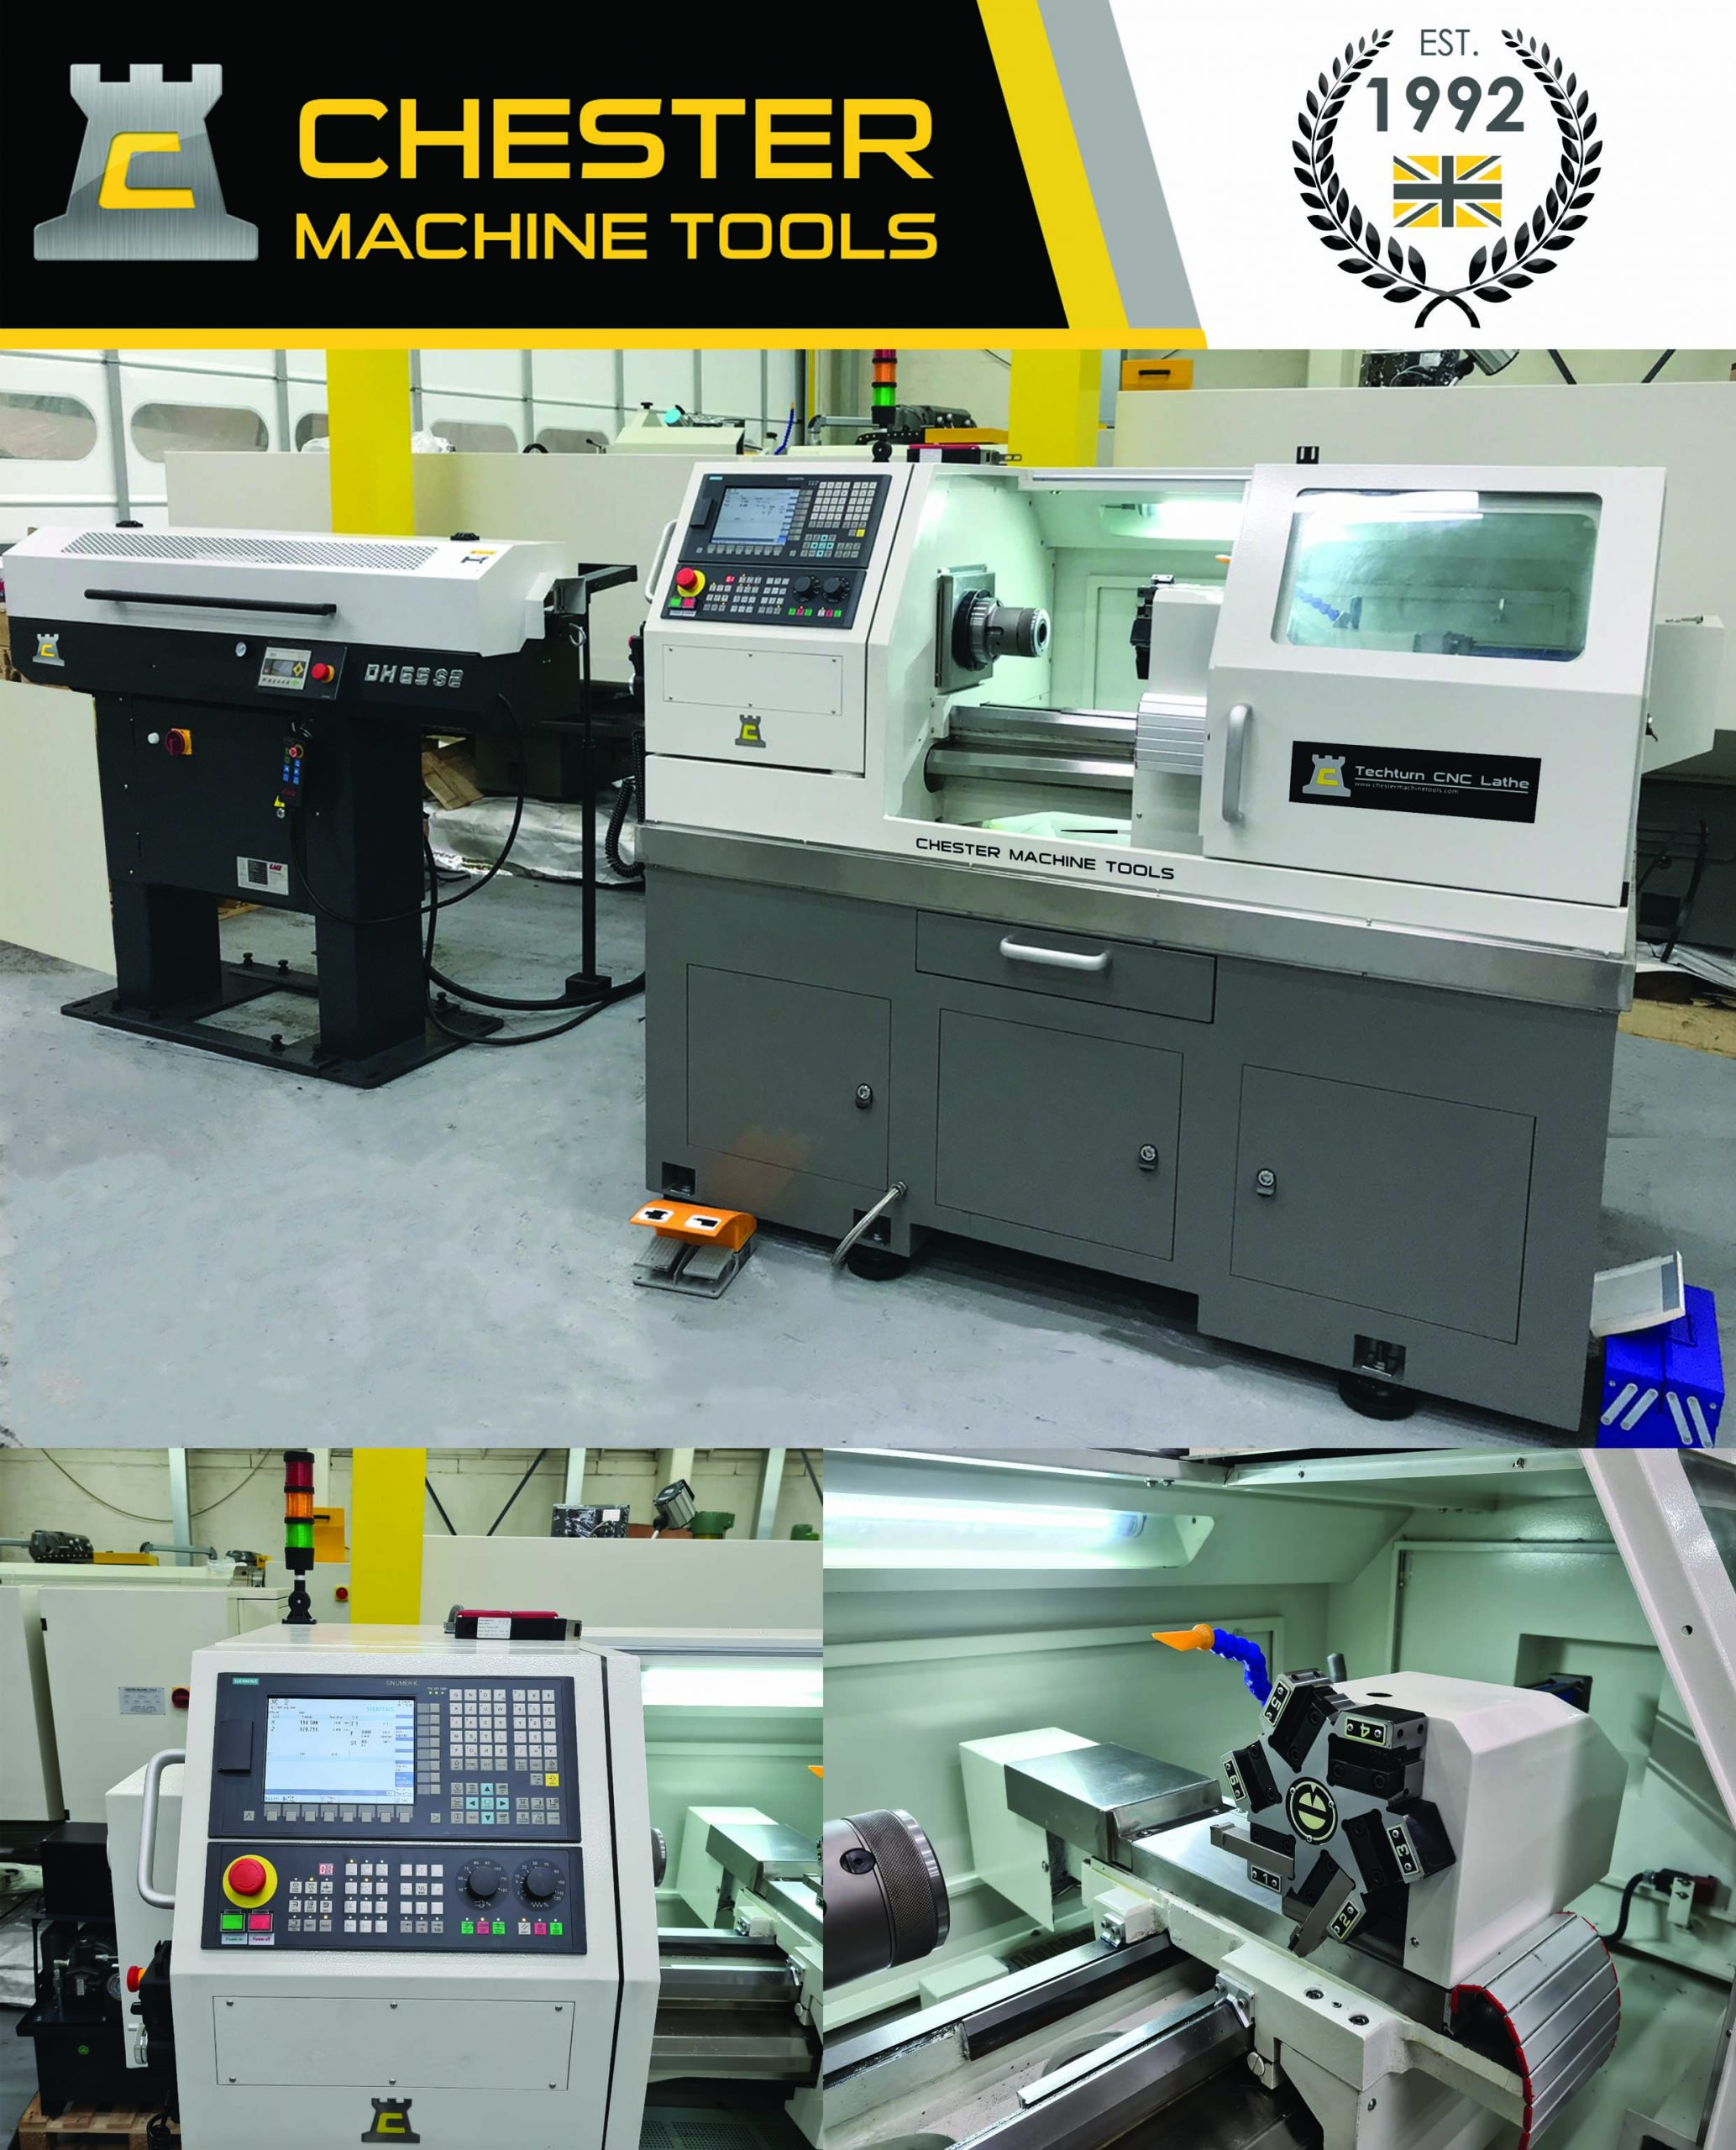 The complete CNC Lathe for production requirements